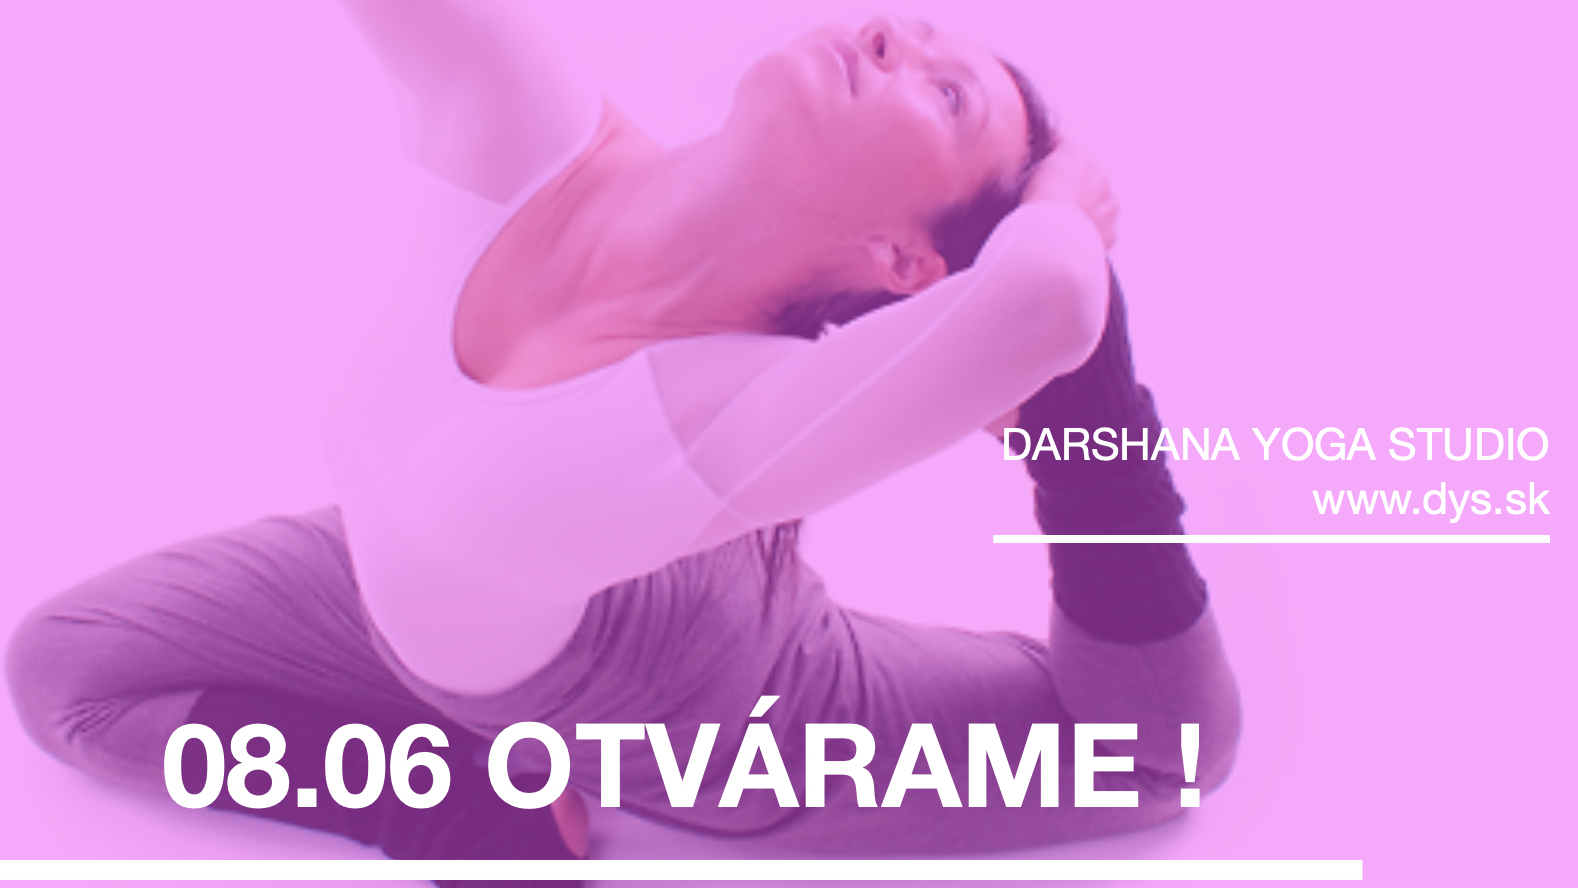 Darshana Yoga Studio